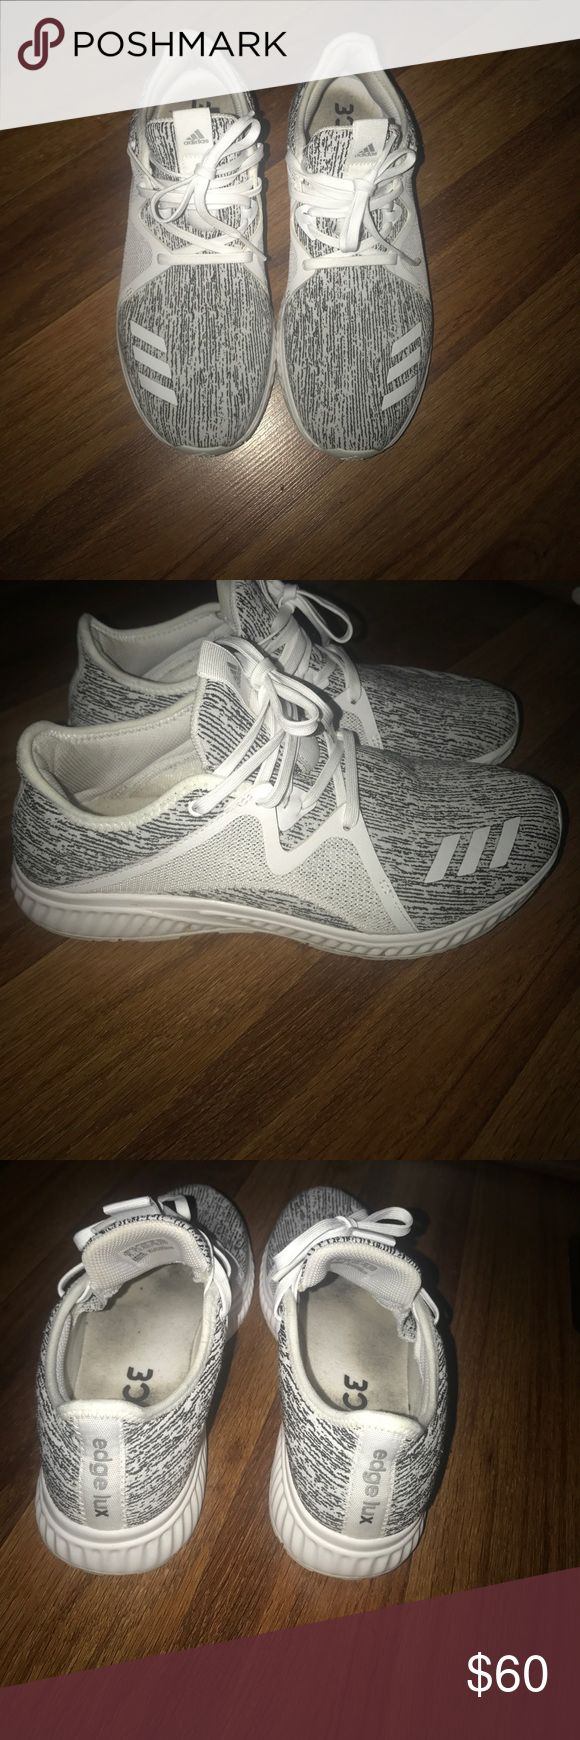 Adidas size 9 Adidas Bounce tennis shoes in great shape! Size 9. Black and white. adidas Shoes Sneakers